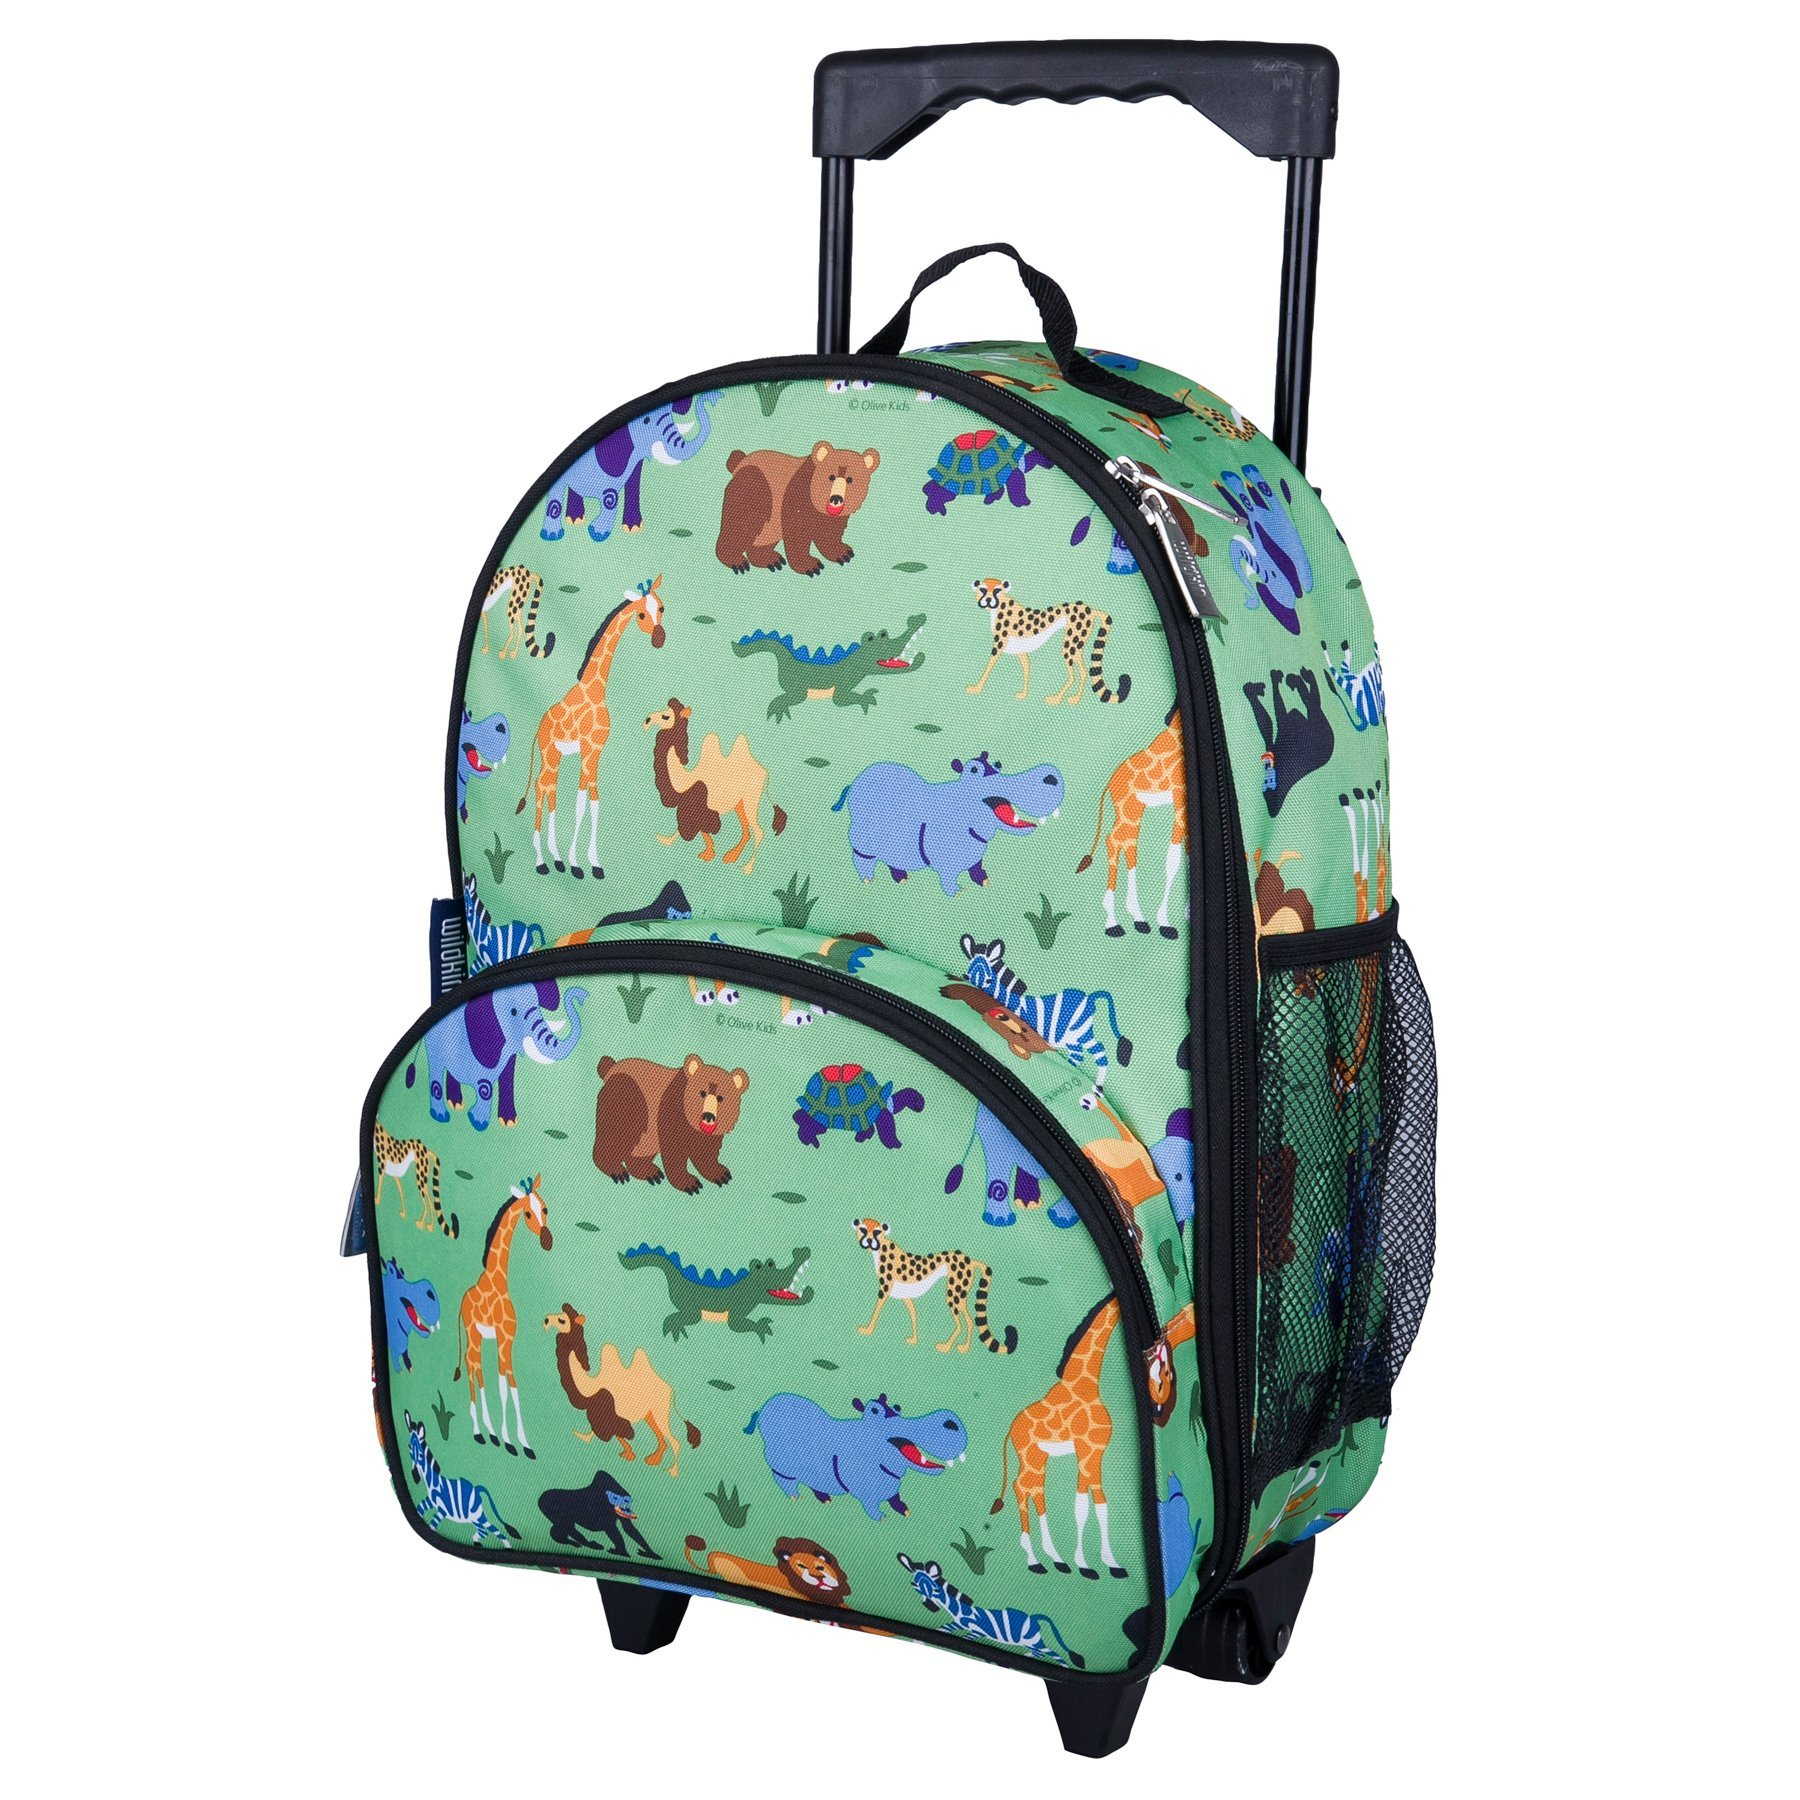 Wildkin Rolling Luggage, Features Telescopic Top Grab Handle with Convenient Extras for Quick and Easy Organization, Olive Kids Design - Wild Animals